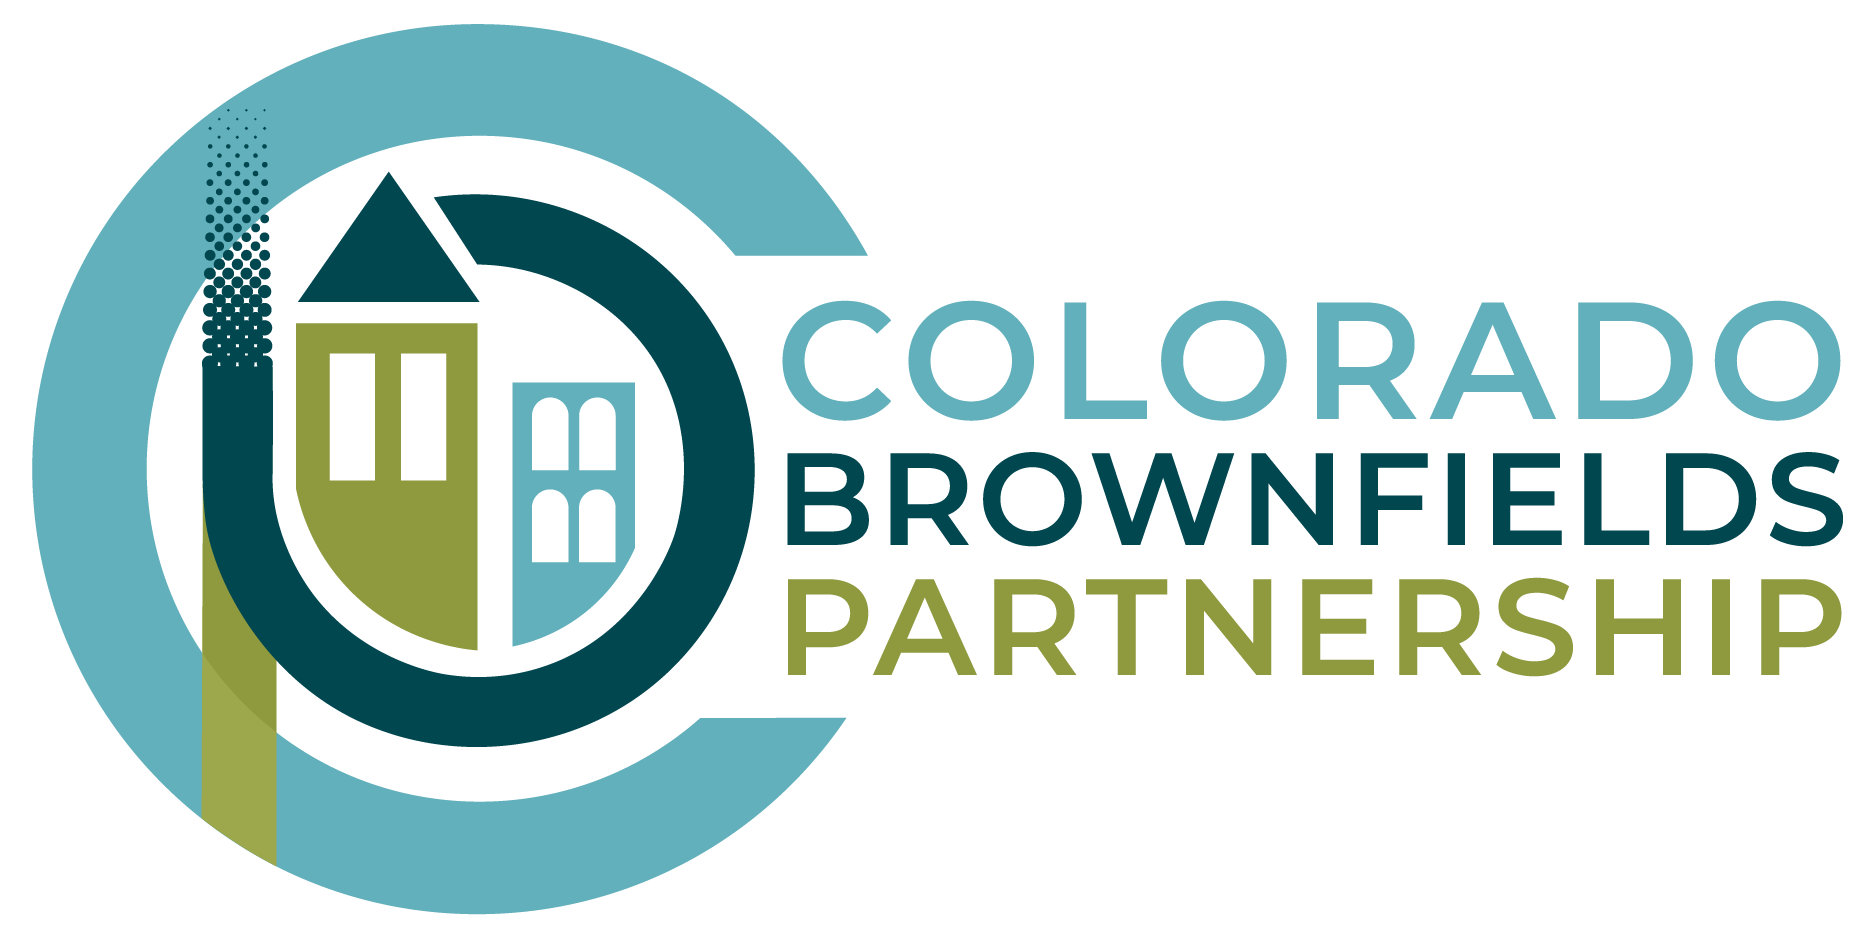 Colorado Brownfields Partnership